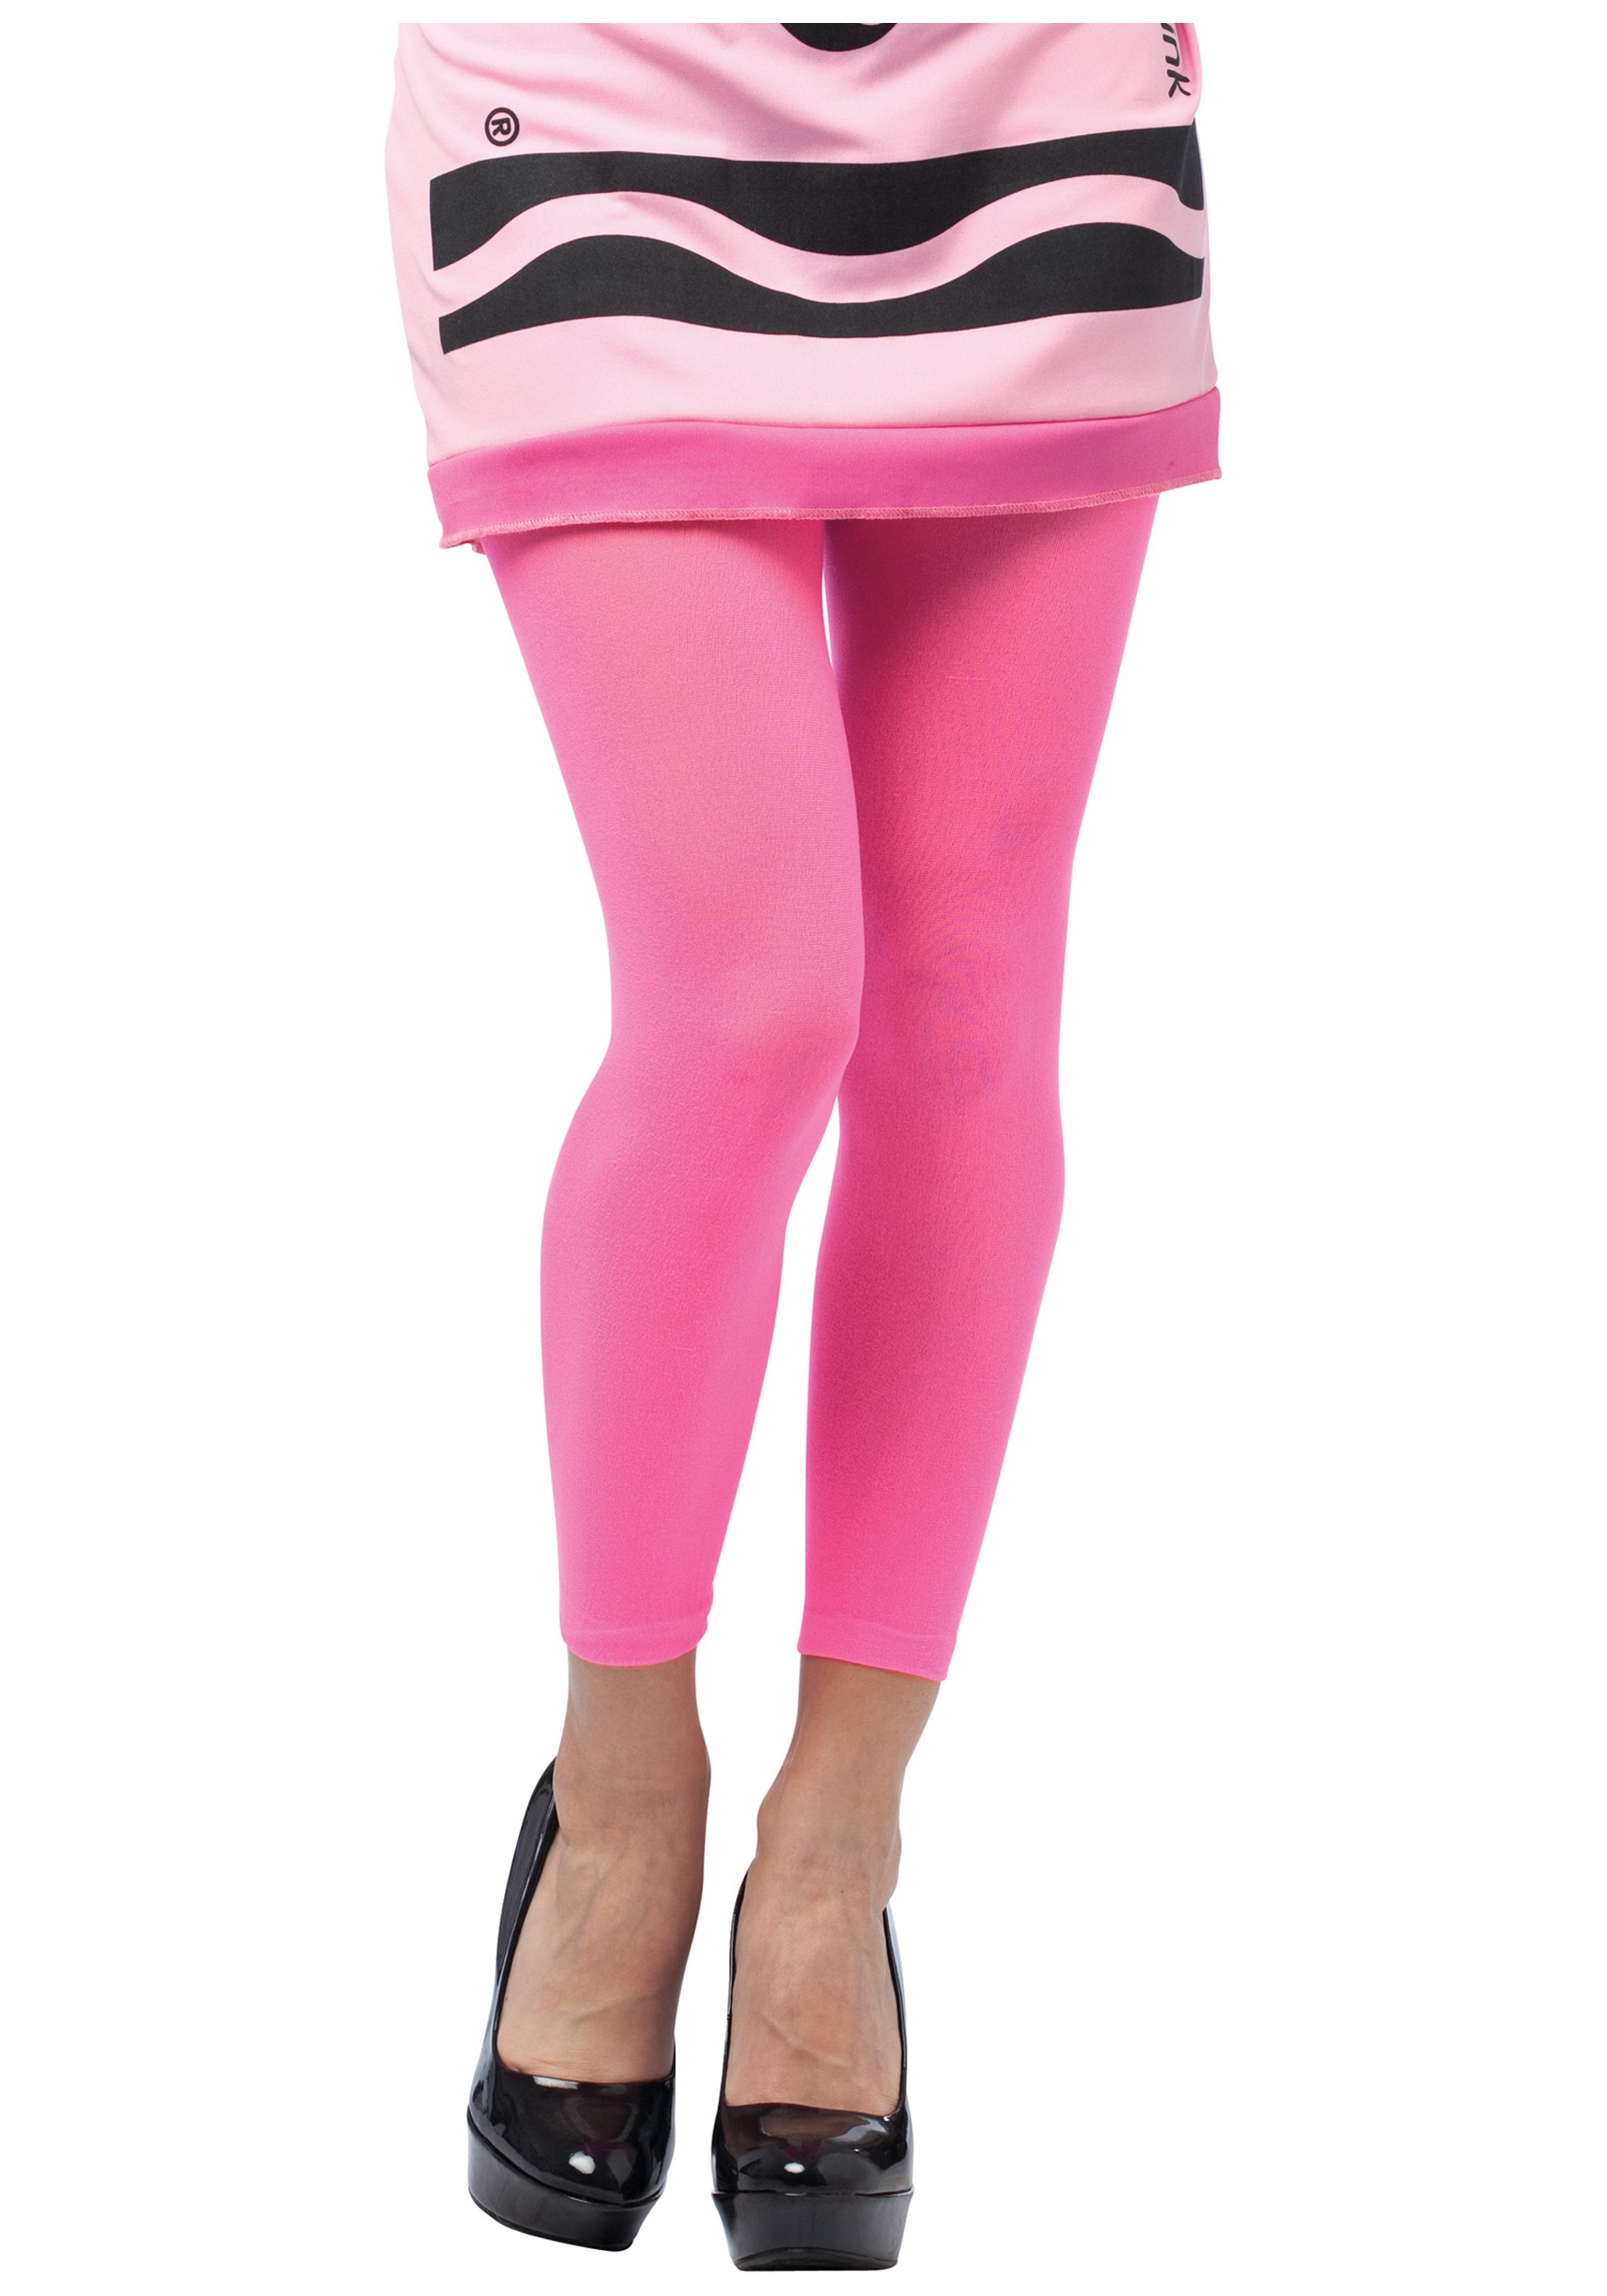 Halloween decorations outdoor - Tickle Me Pink Crayon Footless Tights